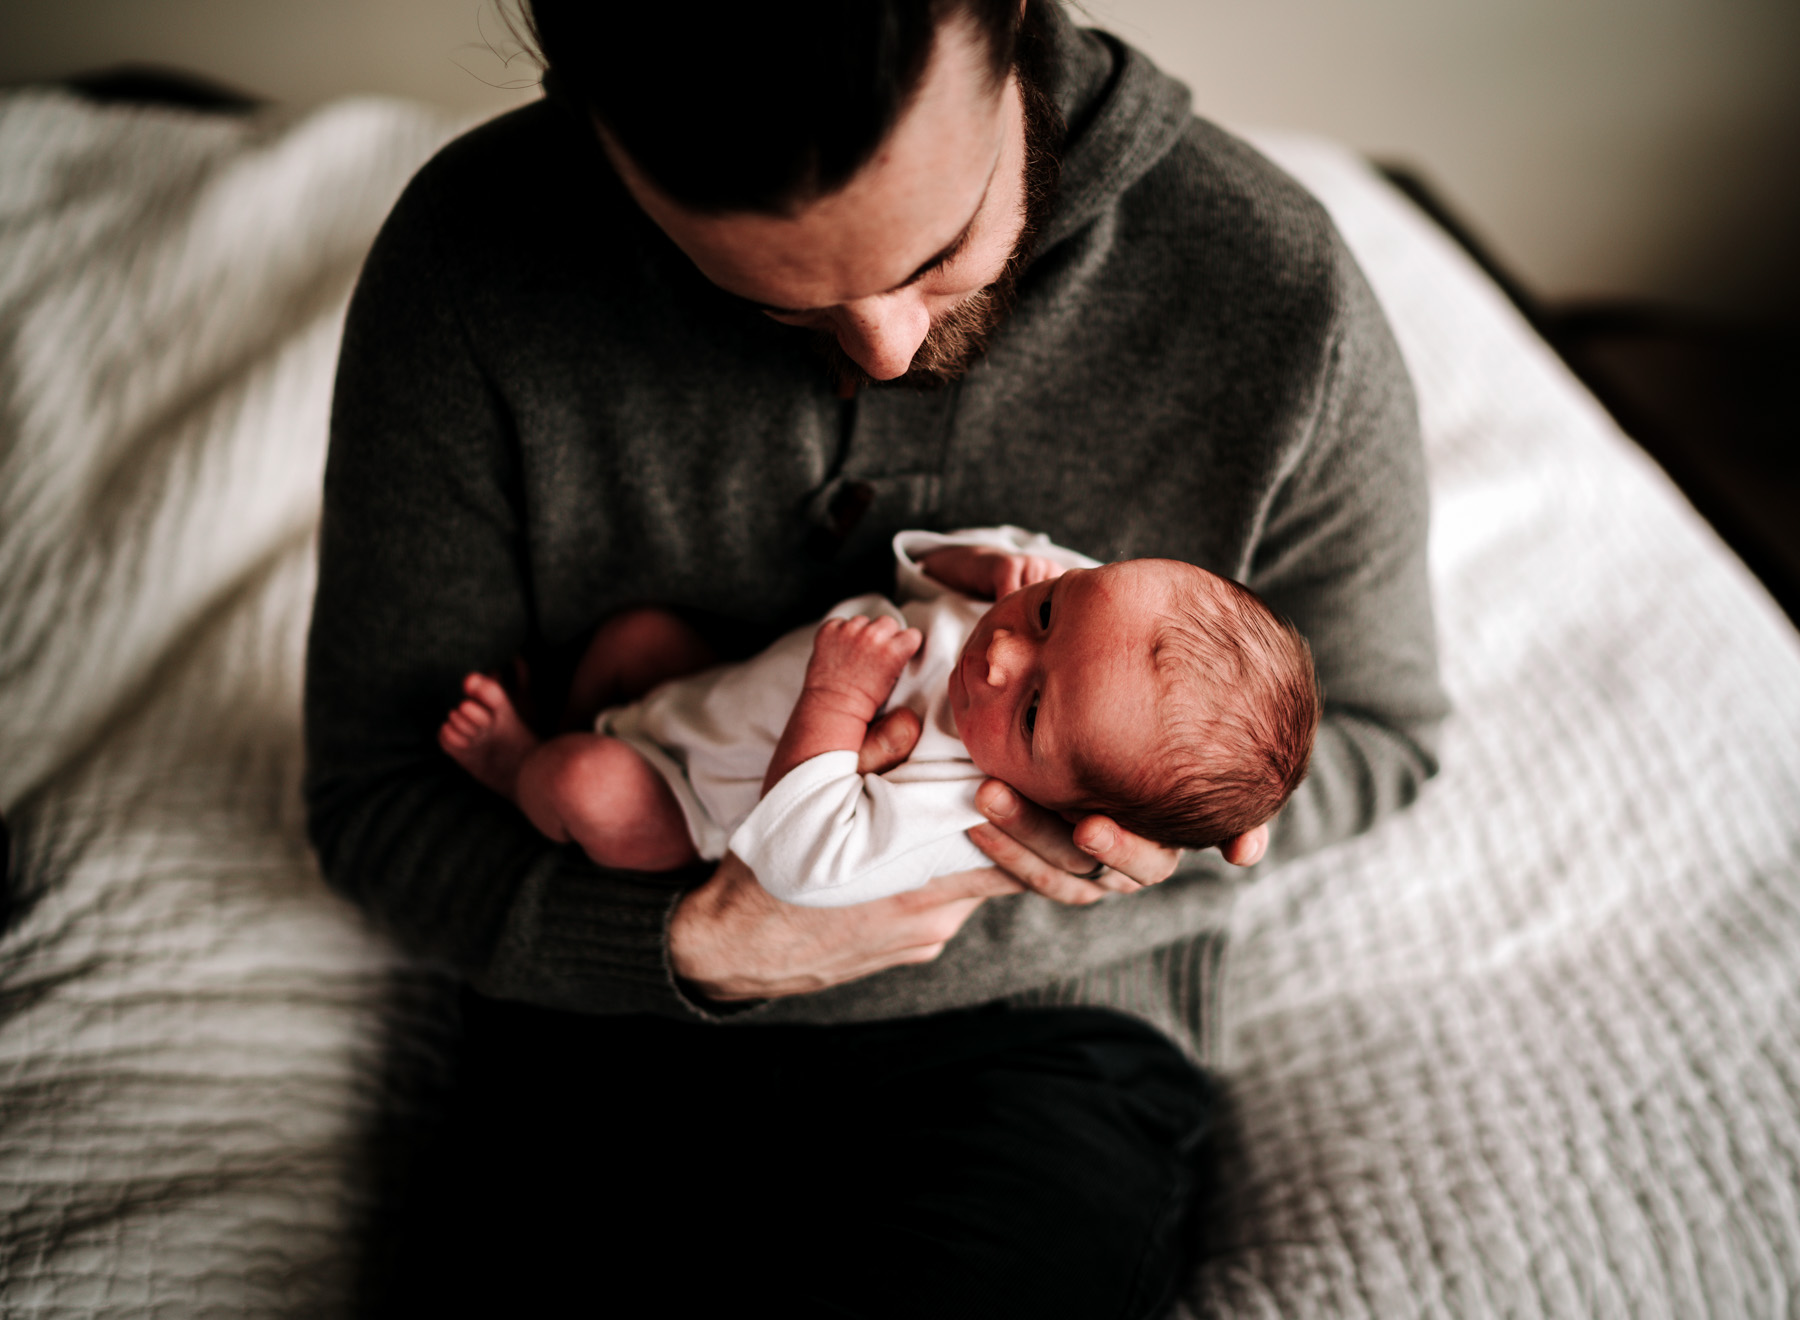 anchorage-wasilla-newborn-photographer-201925_17.jpg